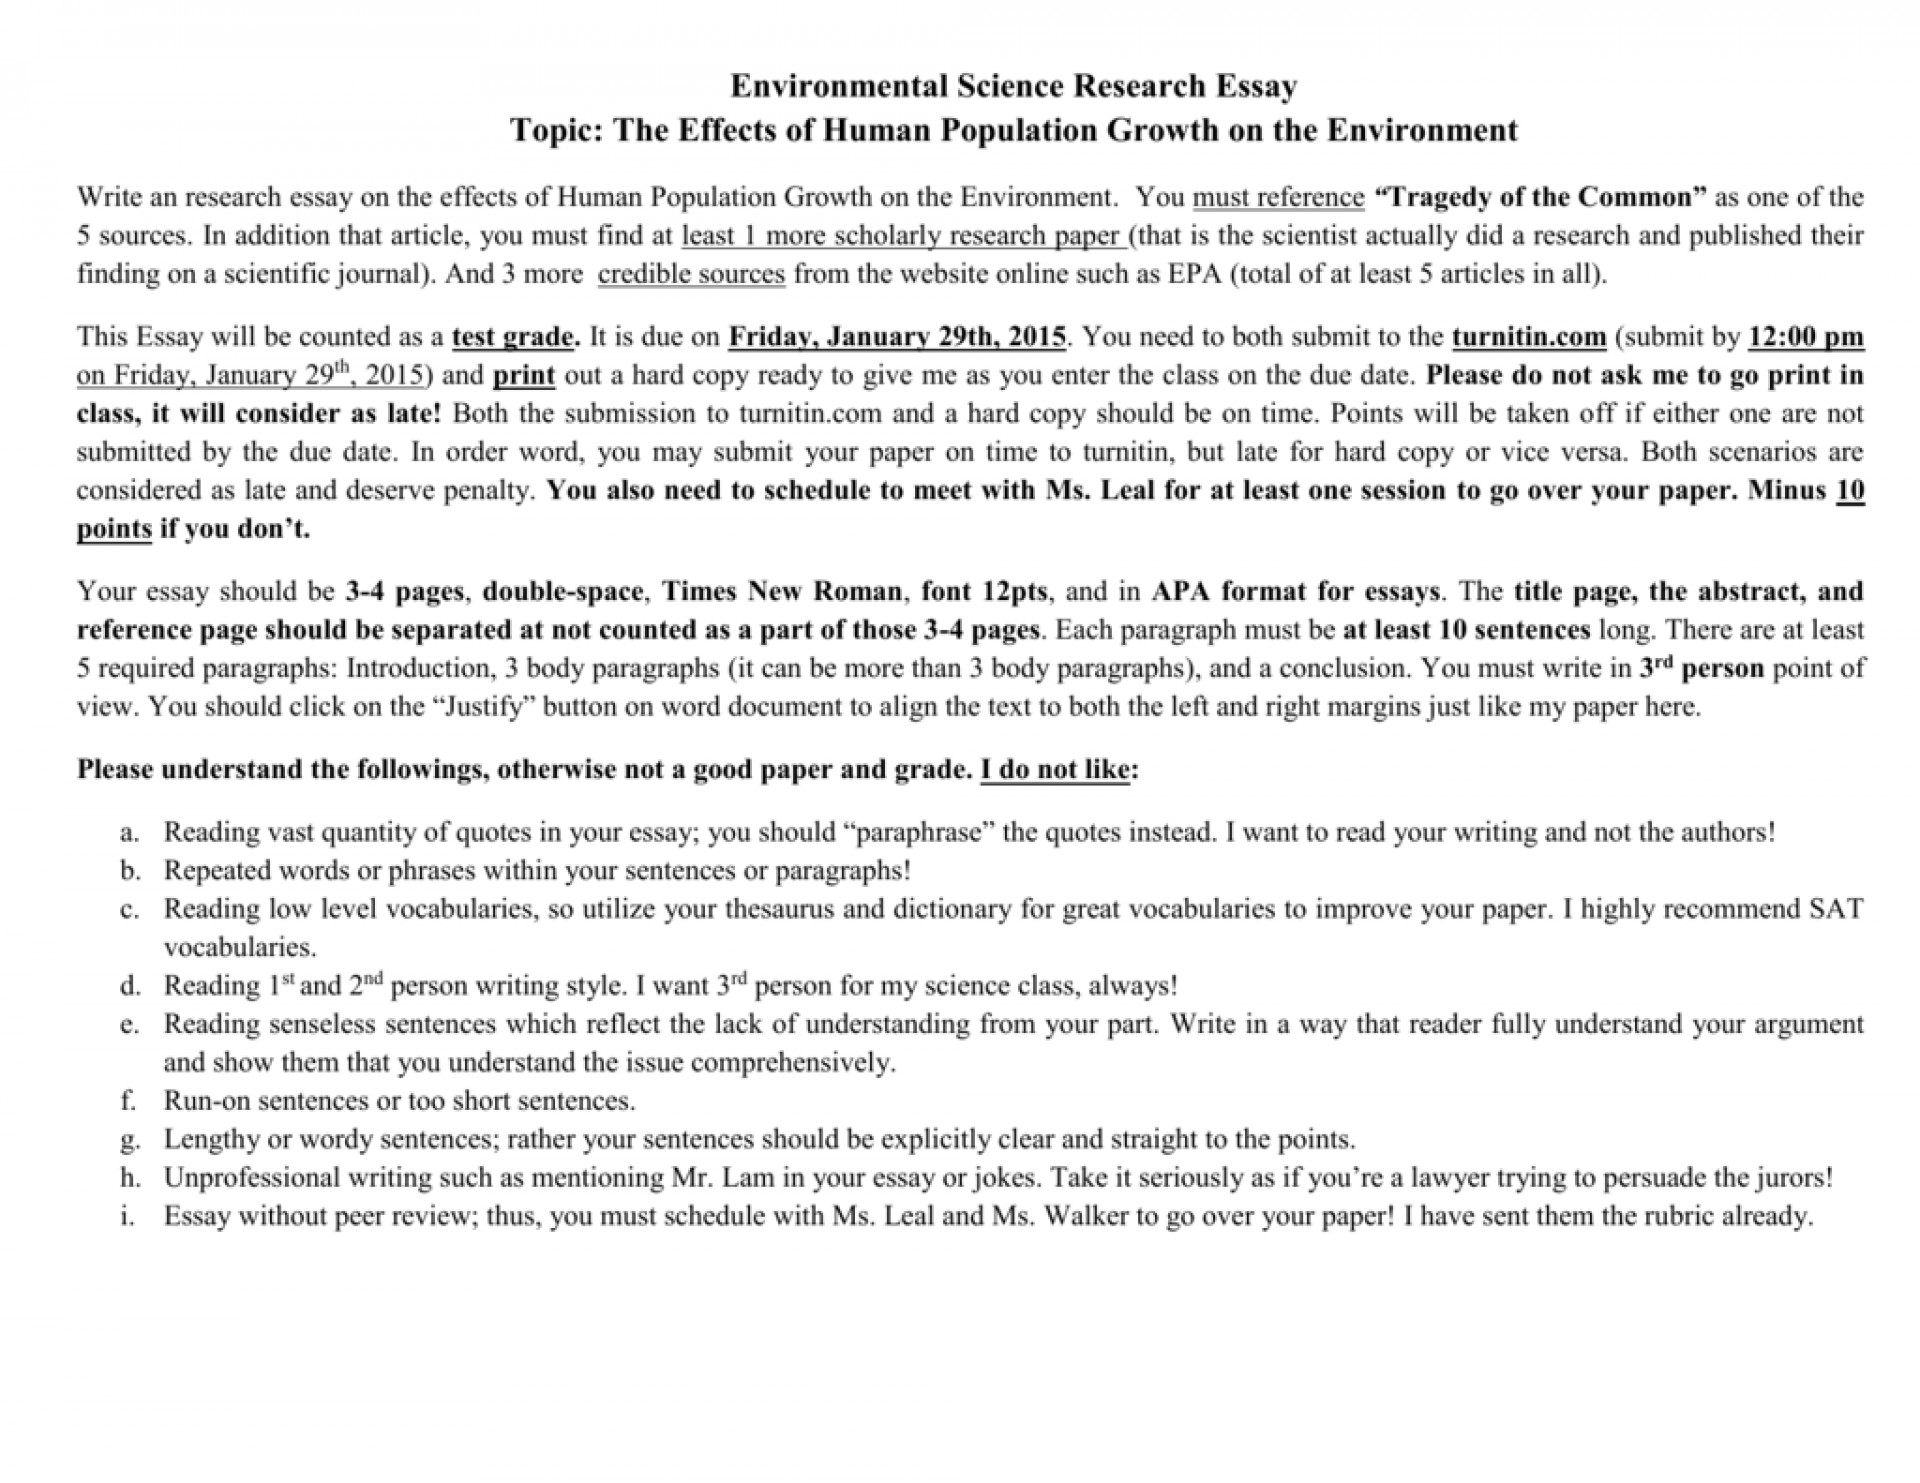 008 Essay Example 008035893 1 Human Impact On The Environment Impressive Topics 1920